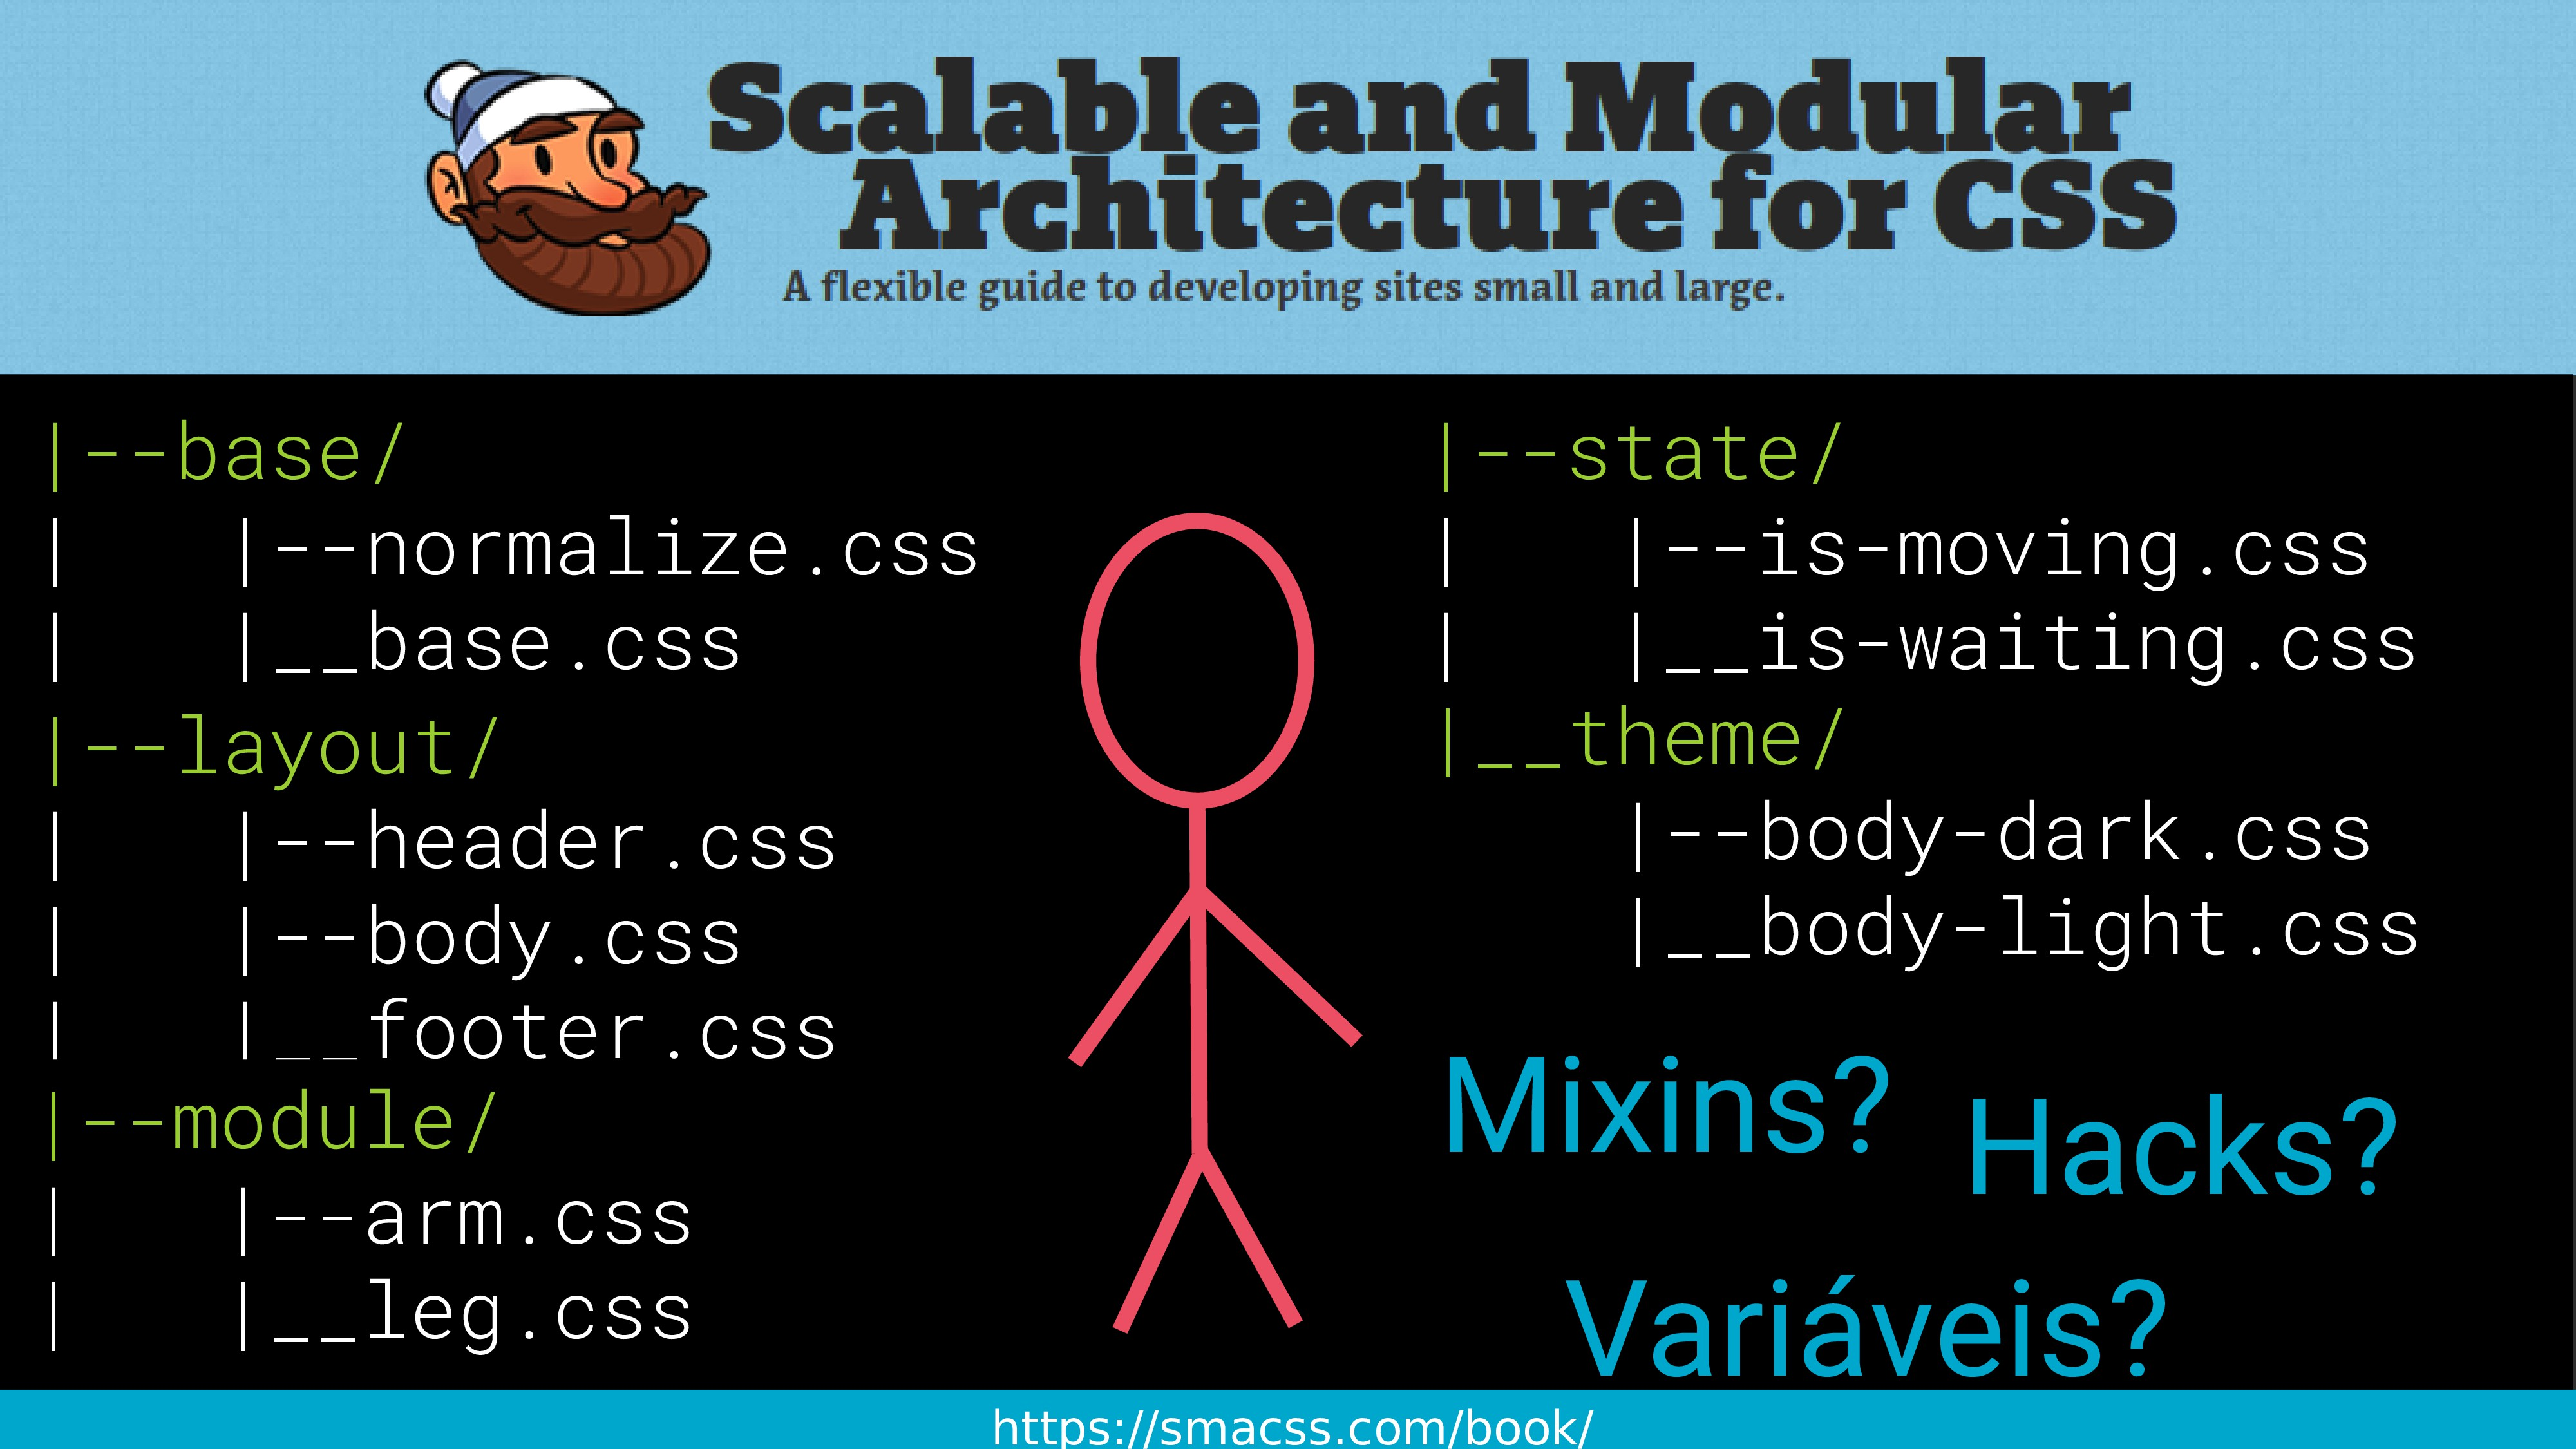 |--base/ | |--normalize.css | |__base.css |--st...